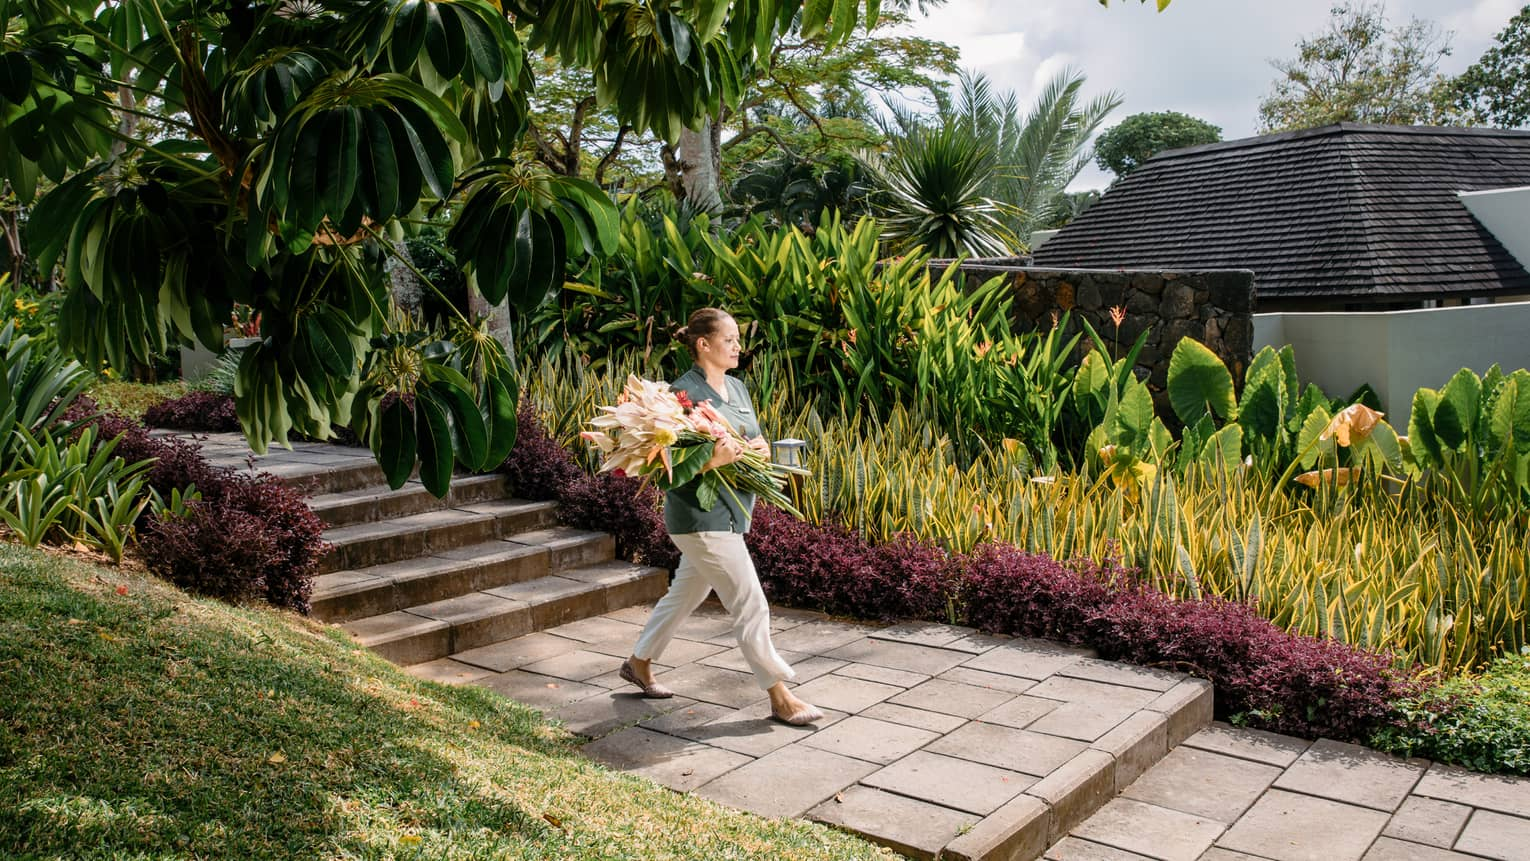 Hotel staff carries large bouquet of tropical flowers down brick path in garden